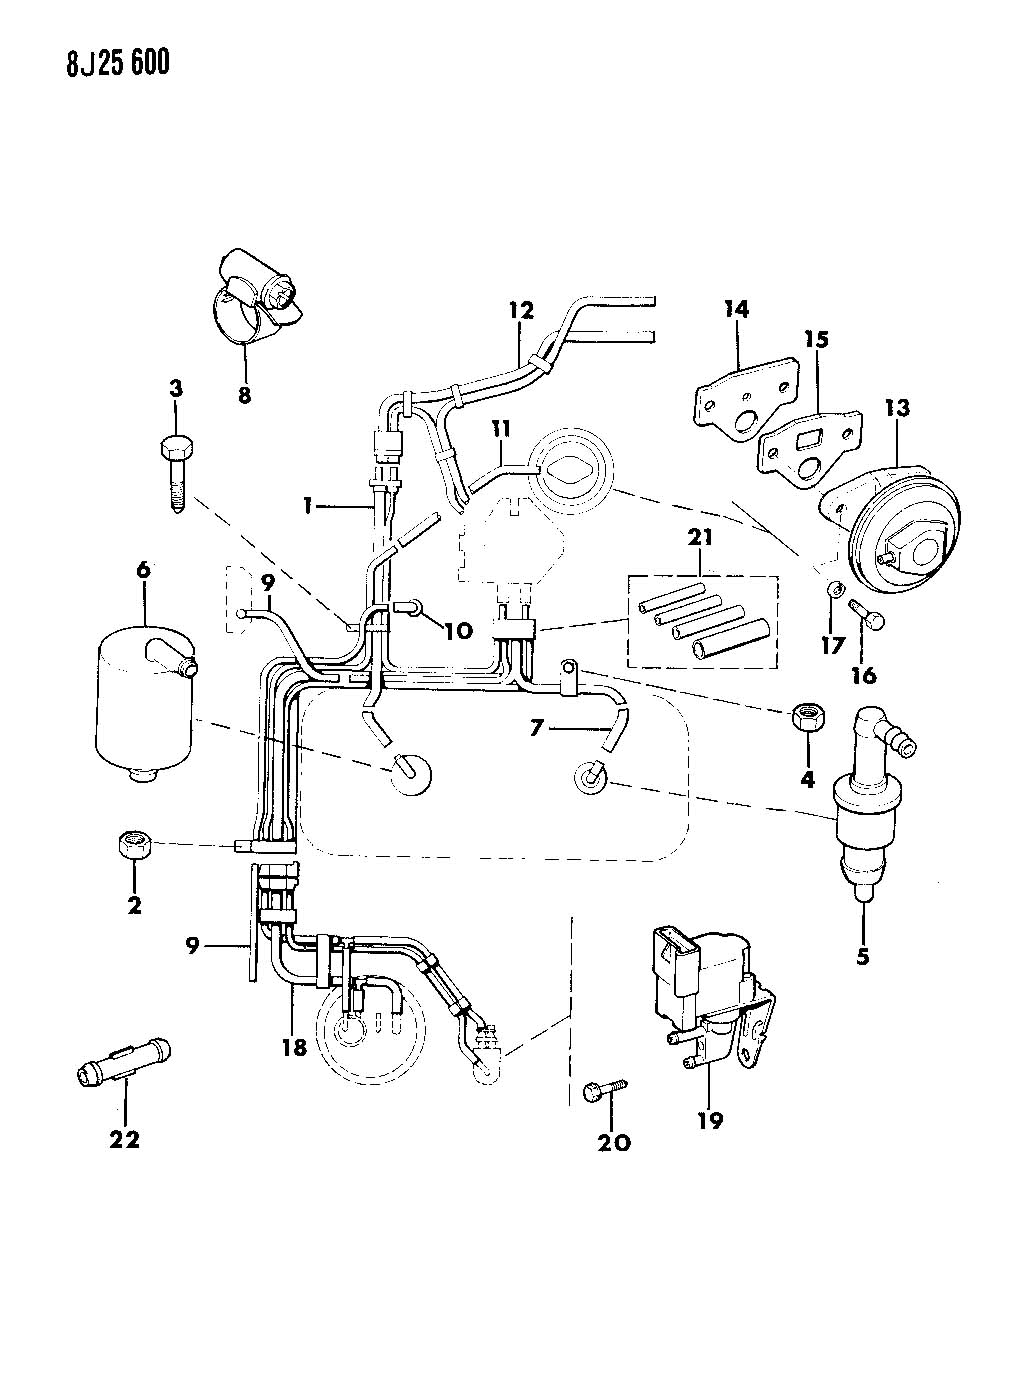 1987 jeep wrangler 4 2 vacuum diagram  jeep  auto fuse box